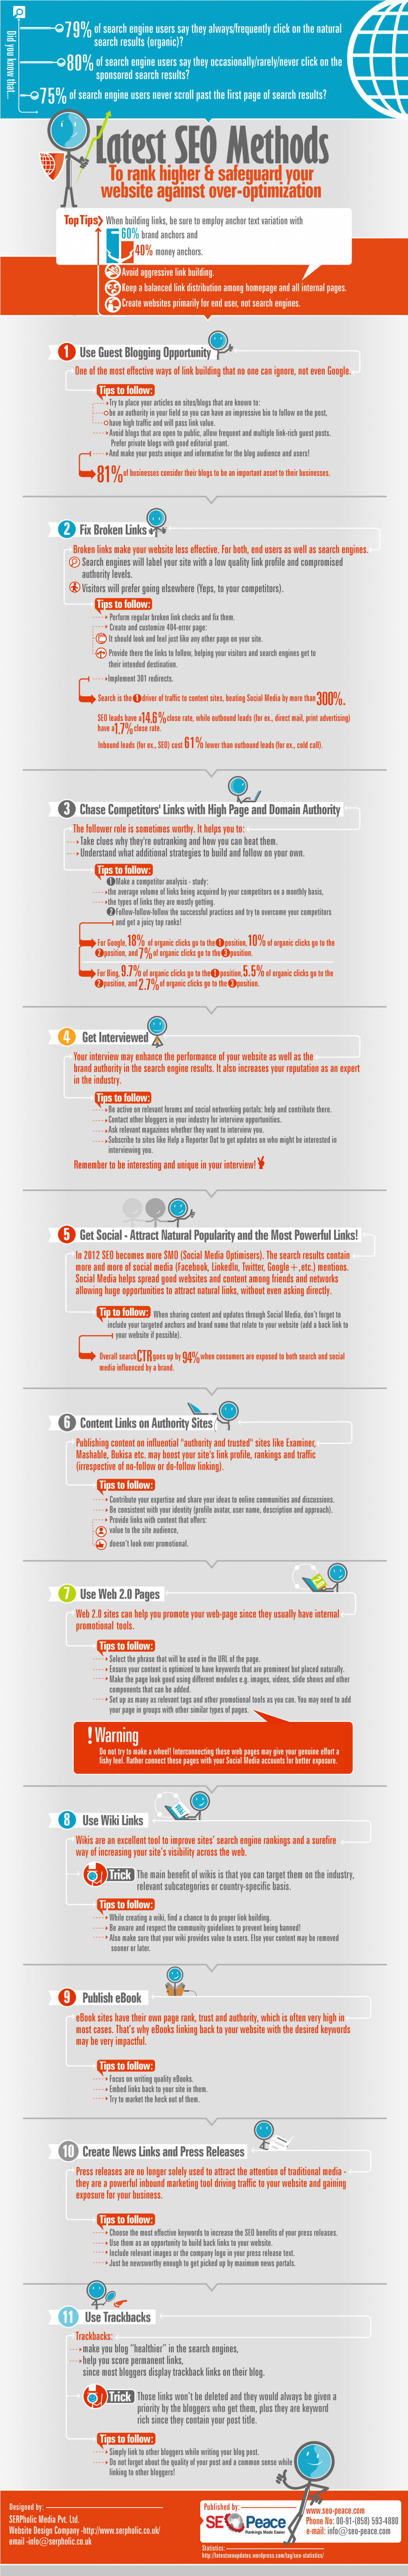 Infographic: Latest SEO Methods To Rank Higher  Infographic